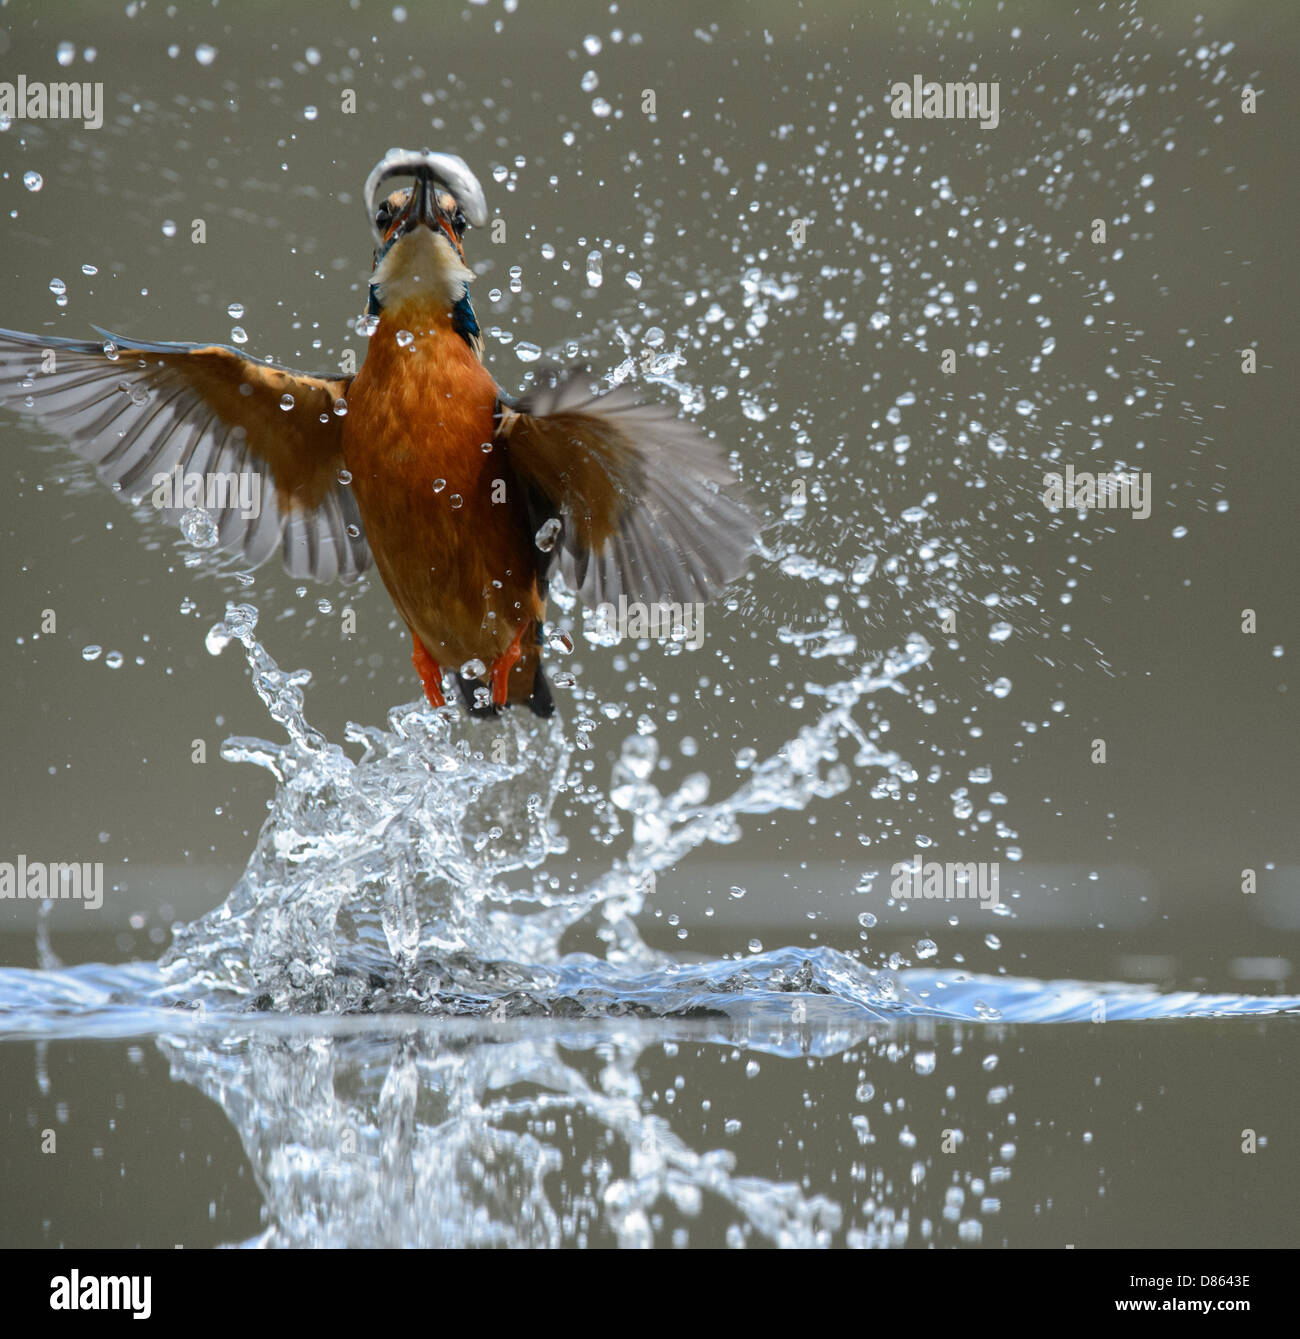 Diving kingfisher - Stock Image